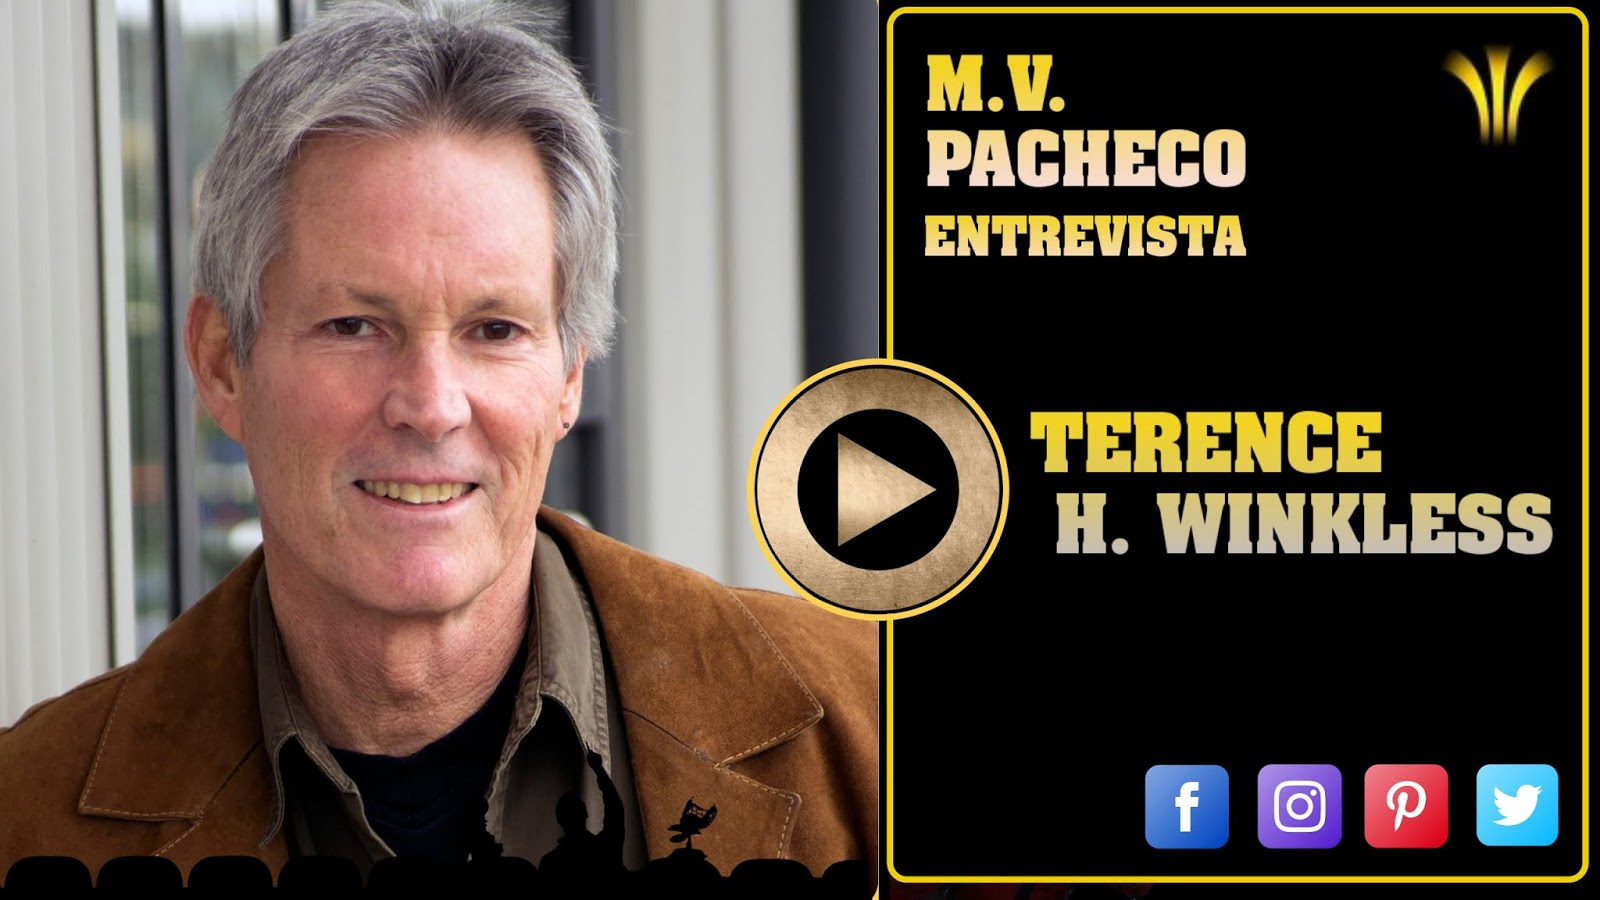 terence-h-winkless-7